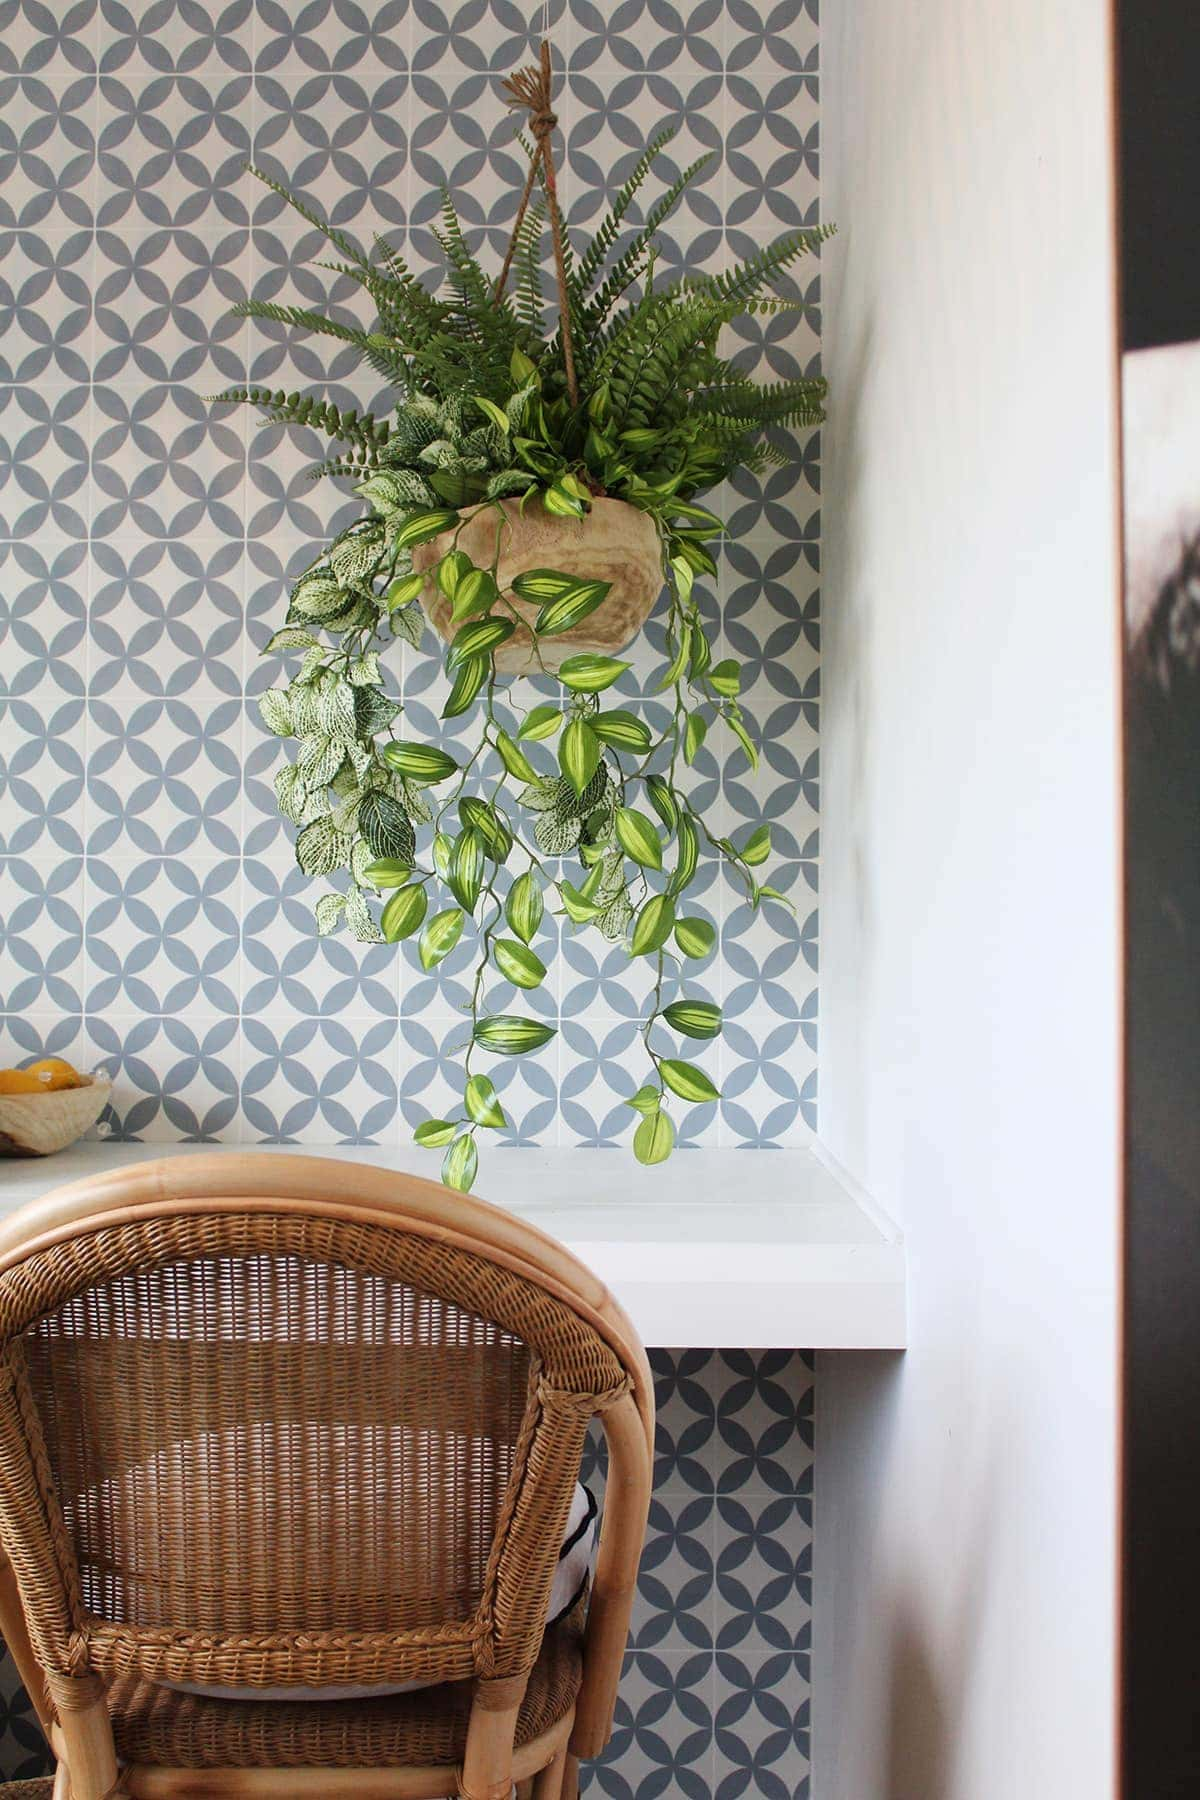 hamptons store blue and white geometric tile wall with hanging indoor plant